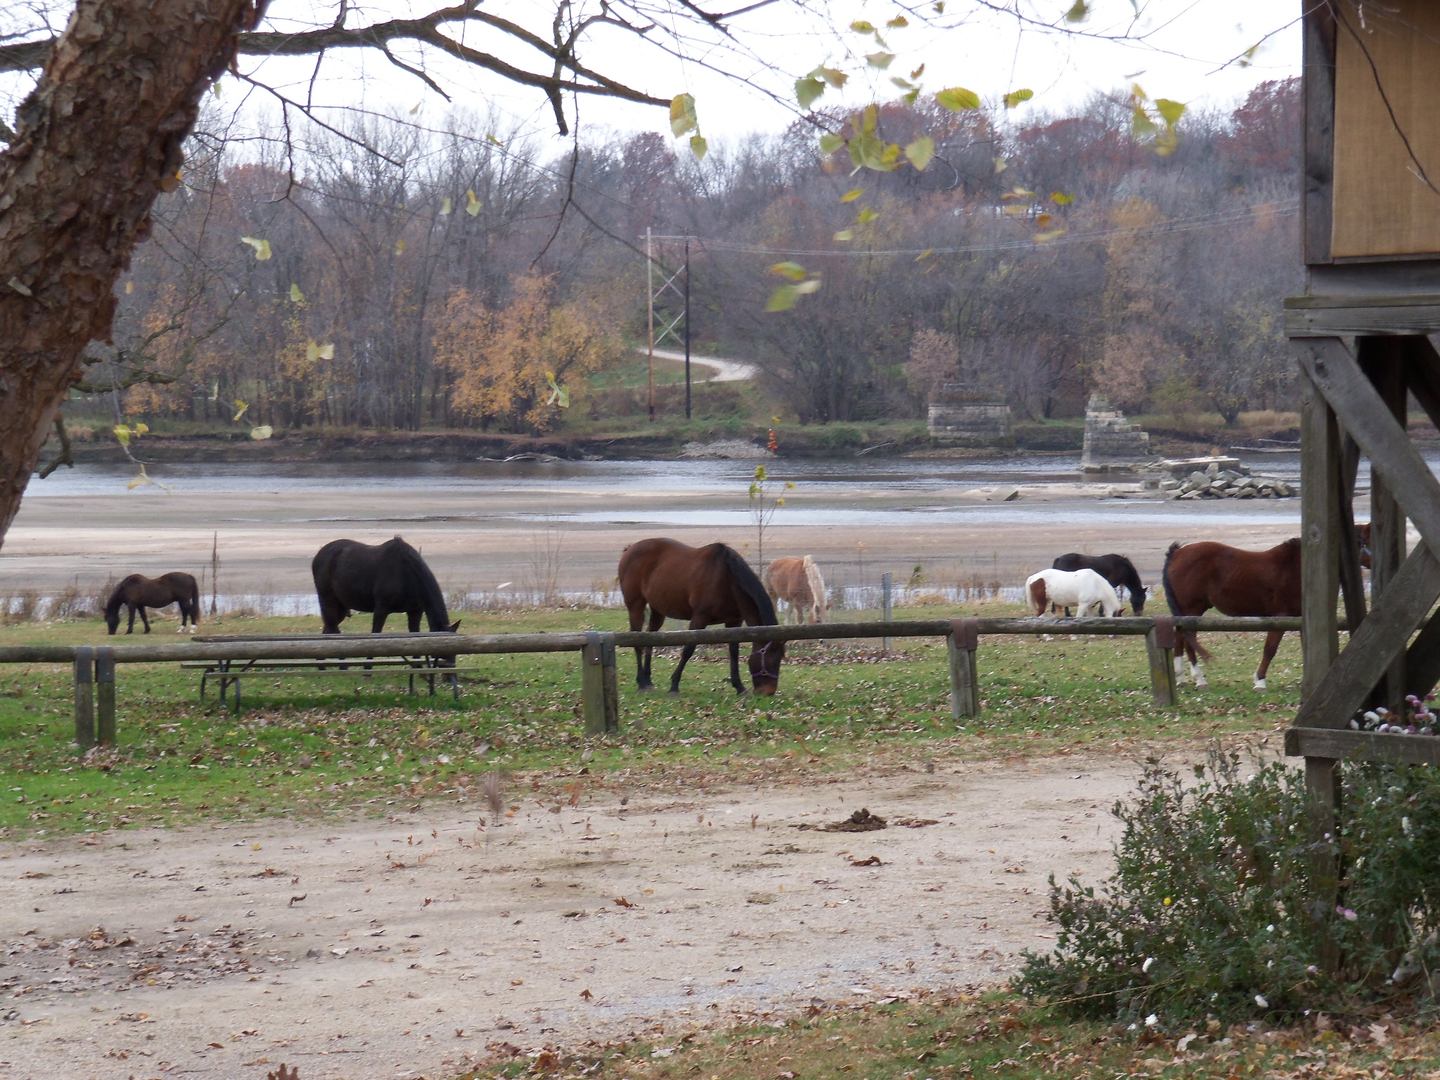 Horseback Riding in Iowa - Home - Cedar Valley Stables